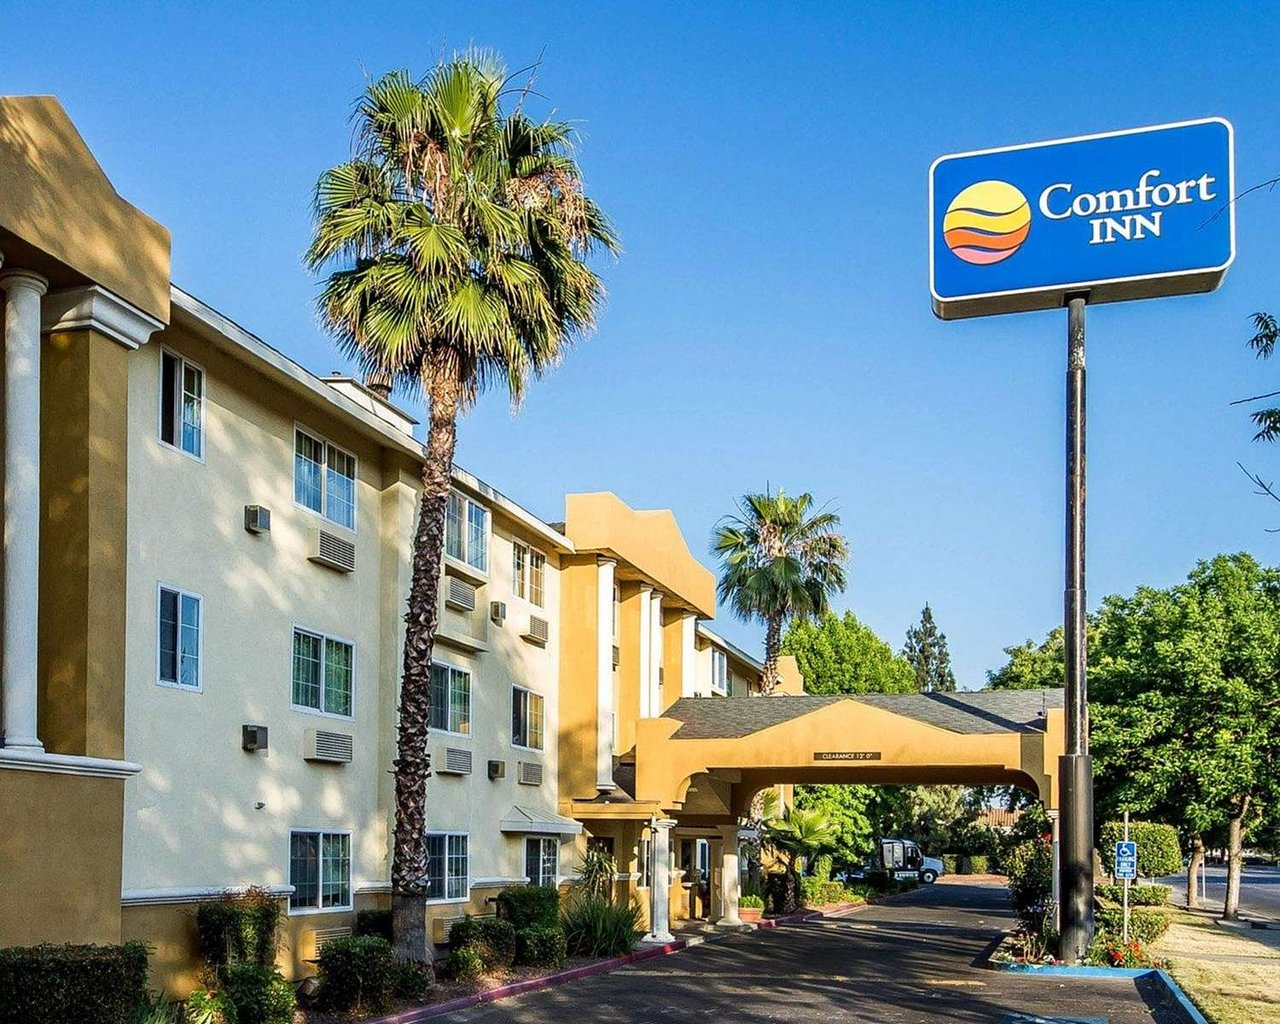 Comfort Inn 67 7 8 Updated 2018 Prices Hotel Reviews Modesto Ca Tripadvisor